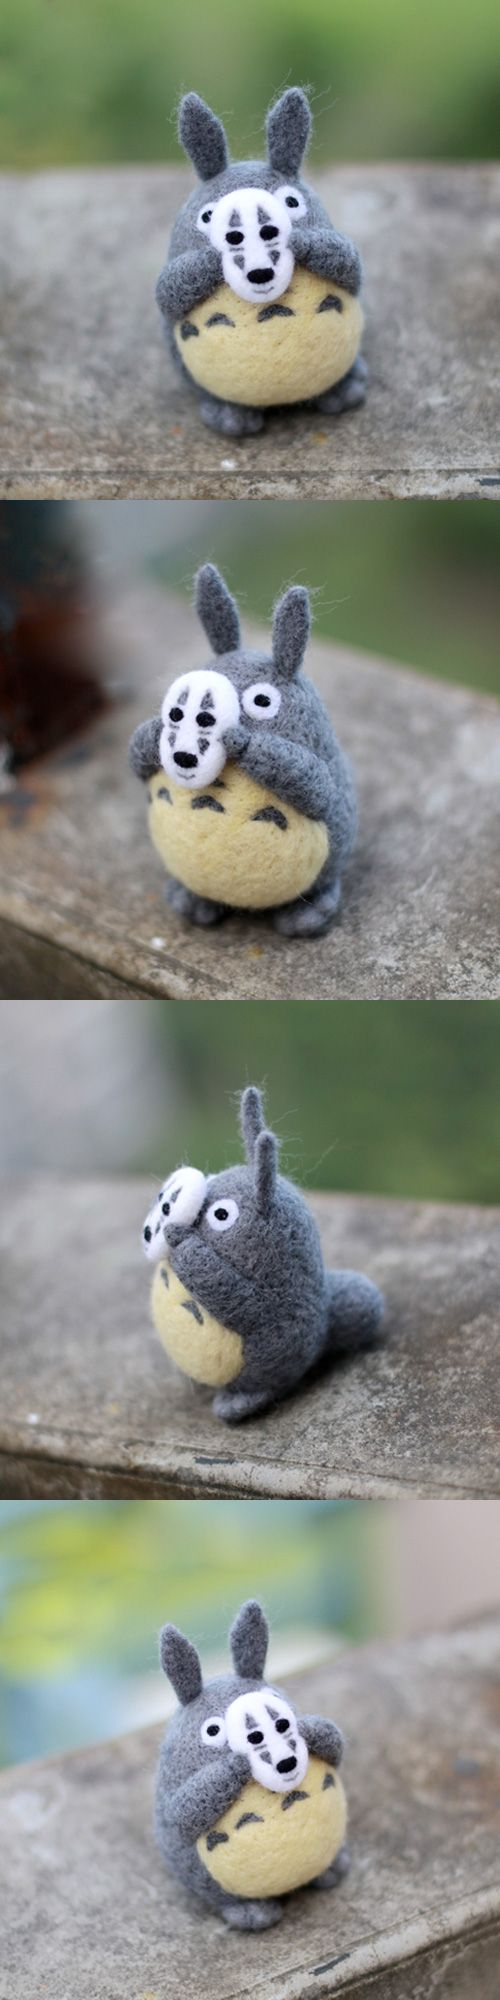 Handmade Needle felted felting project animal cute Totoro felted wool doll                                                                                                                                                                                 More